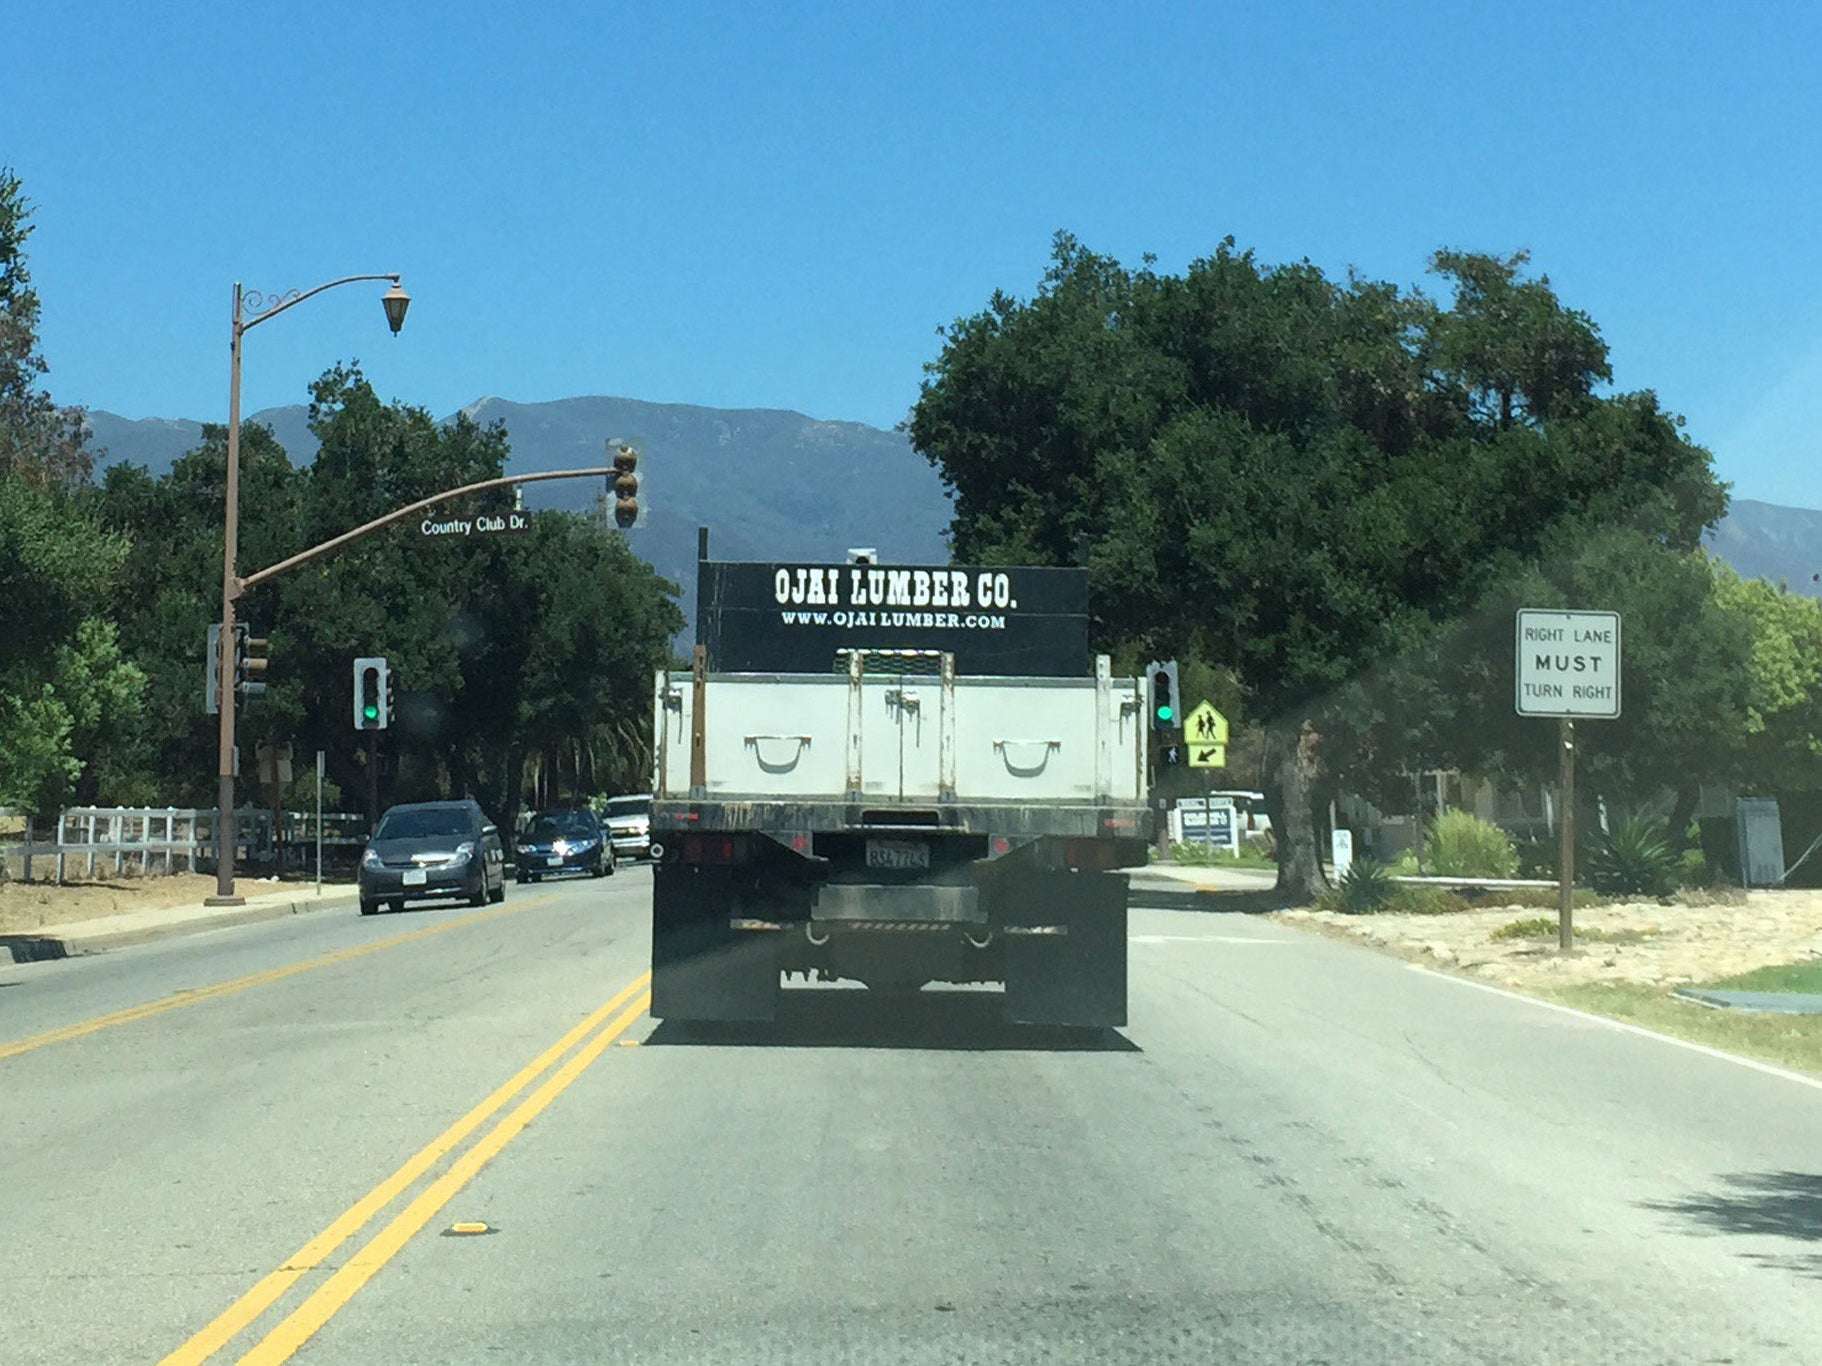 My original inspiration for Lumber Co. was this truck driving into Ojai, California.